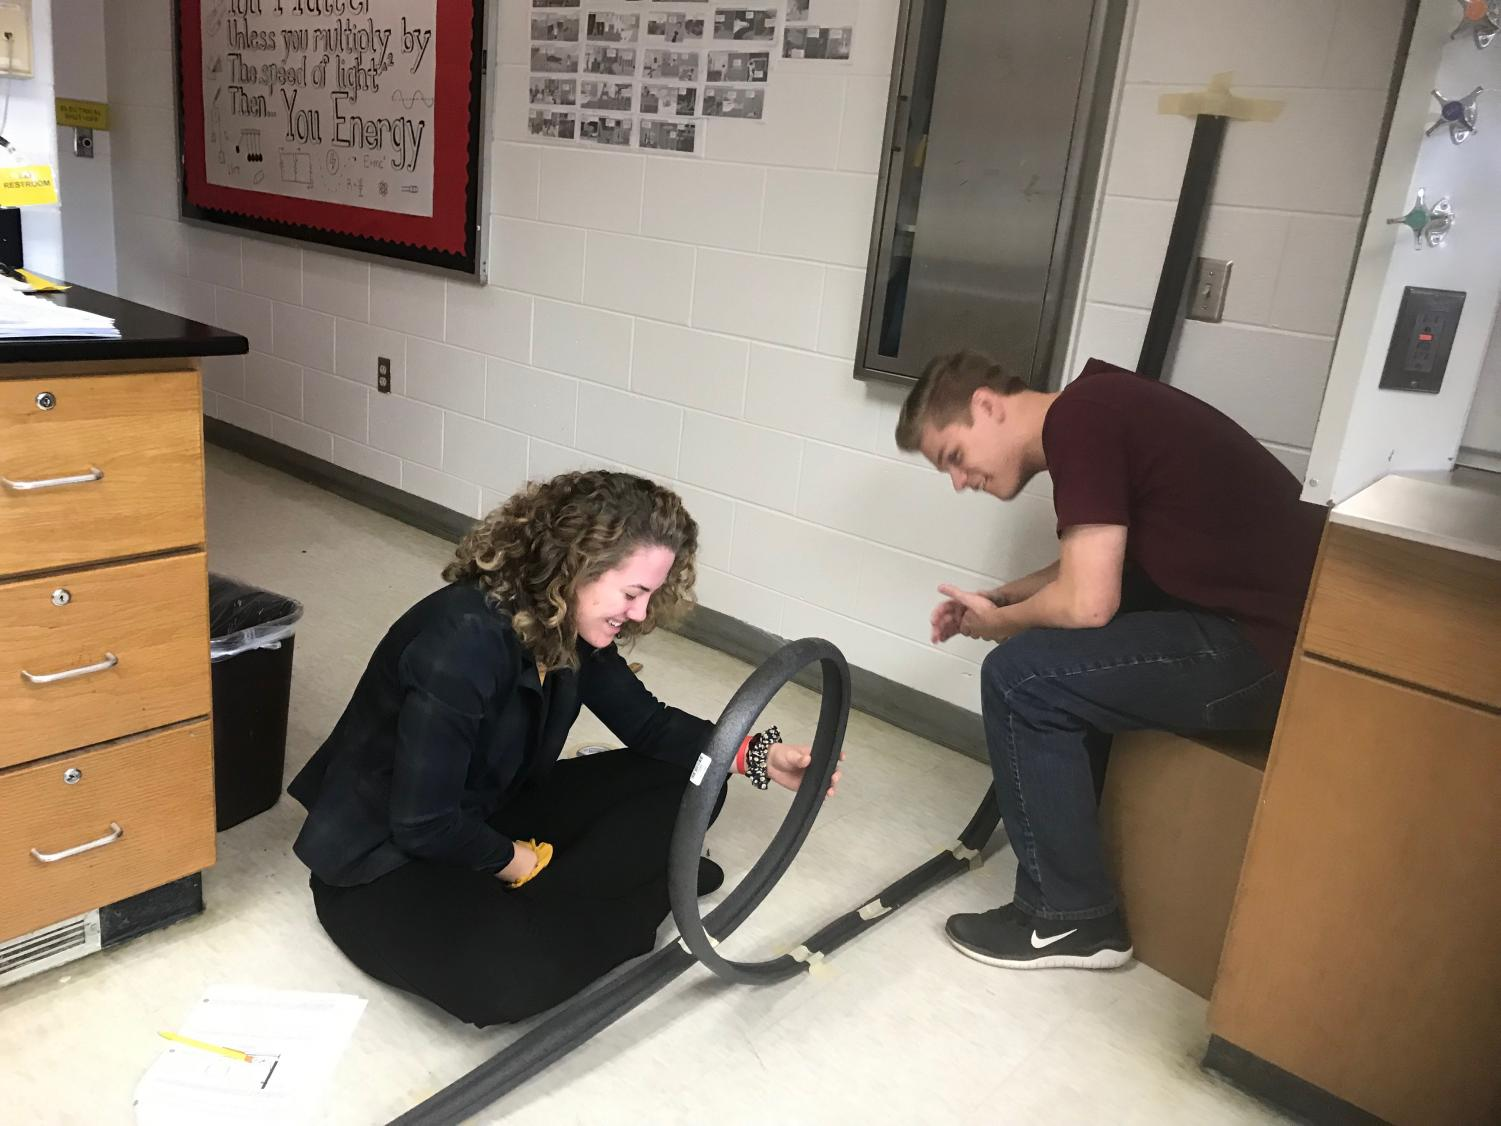 Senior Kay Brennan and junior Dylan Young make their DIY roller coaster in Linda Spangler's 2B physics class on Friday, Jan. 11.